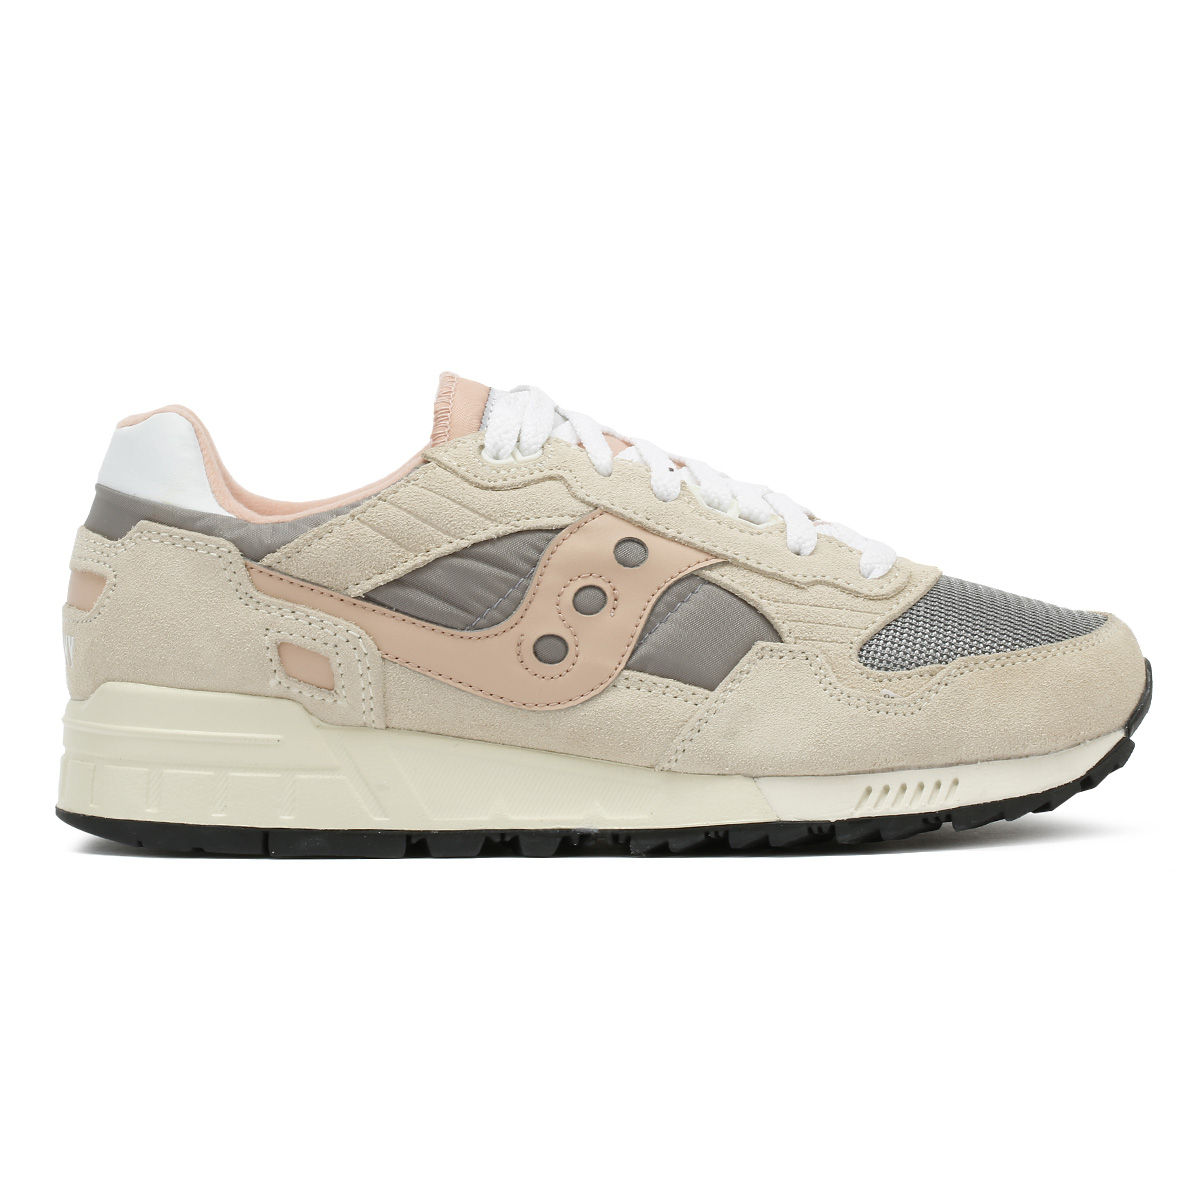 Saucony Damenschuhe Trainers Grau & Pink Shadow 5000 5000 5000 Vintage Sport Casual Schuhes 654014